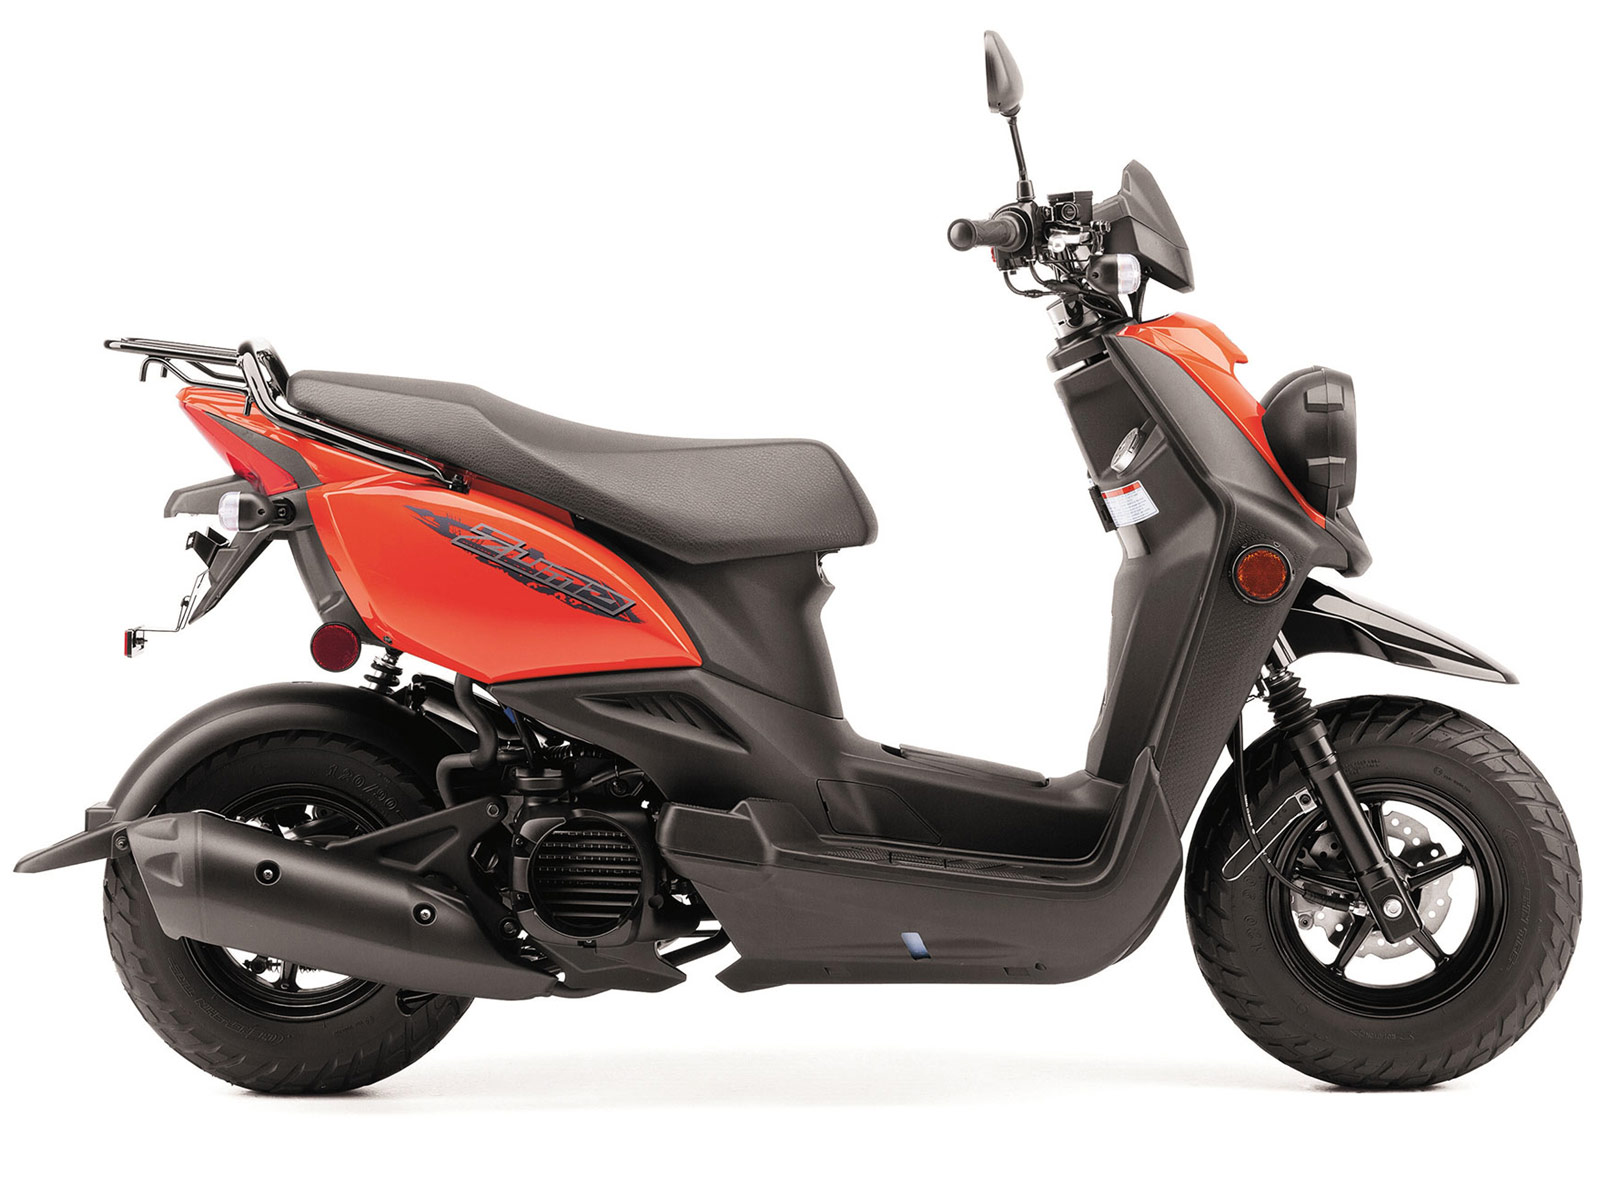 yamaha pictures and specifications motorcycle scooter atv. Black Bedroom Furniture Sets. Home Design Ideas